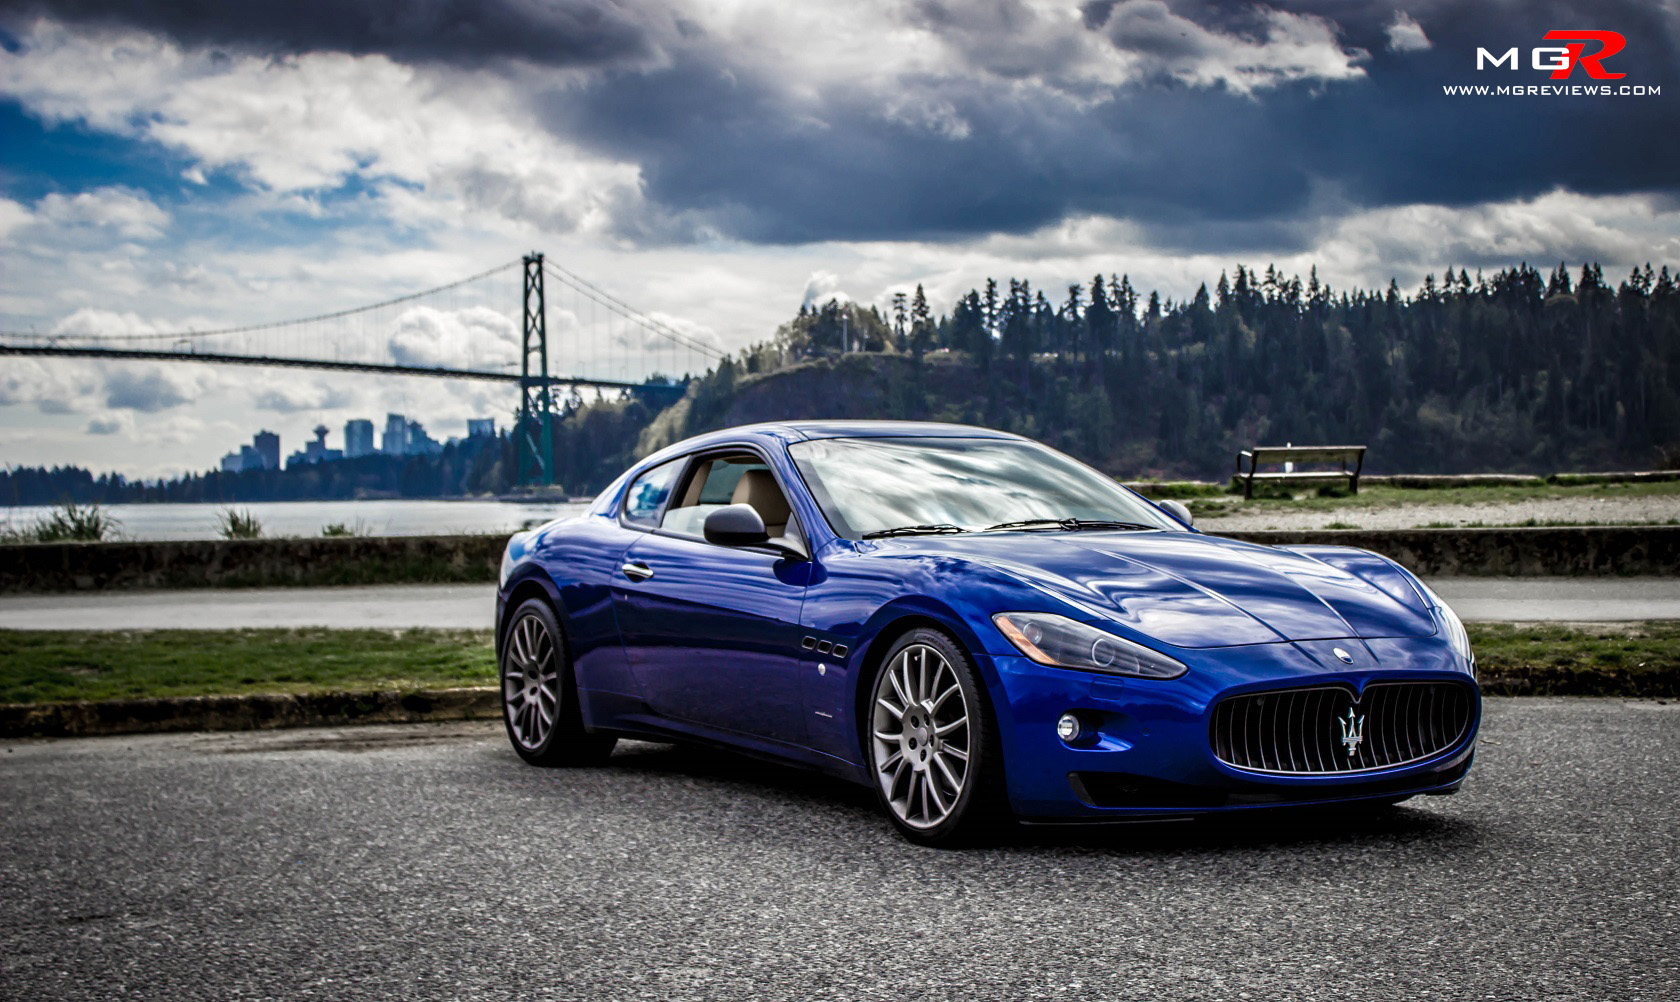 Review 2009 Maserati Granturismo S M G Reviews